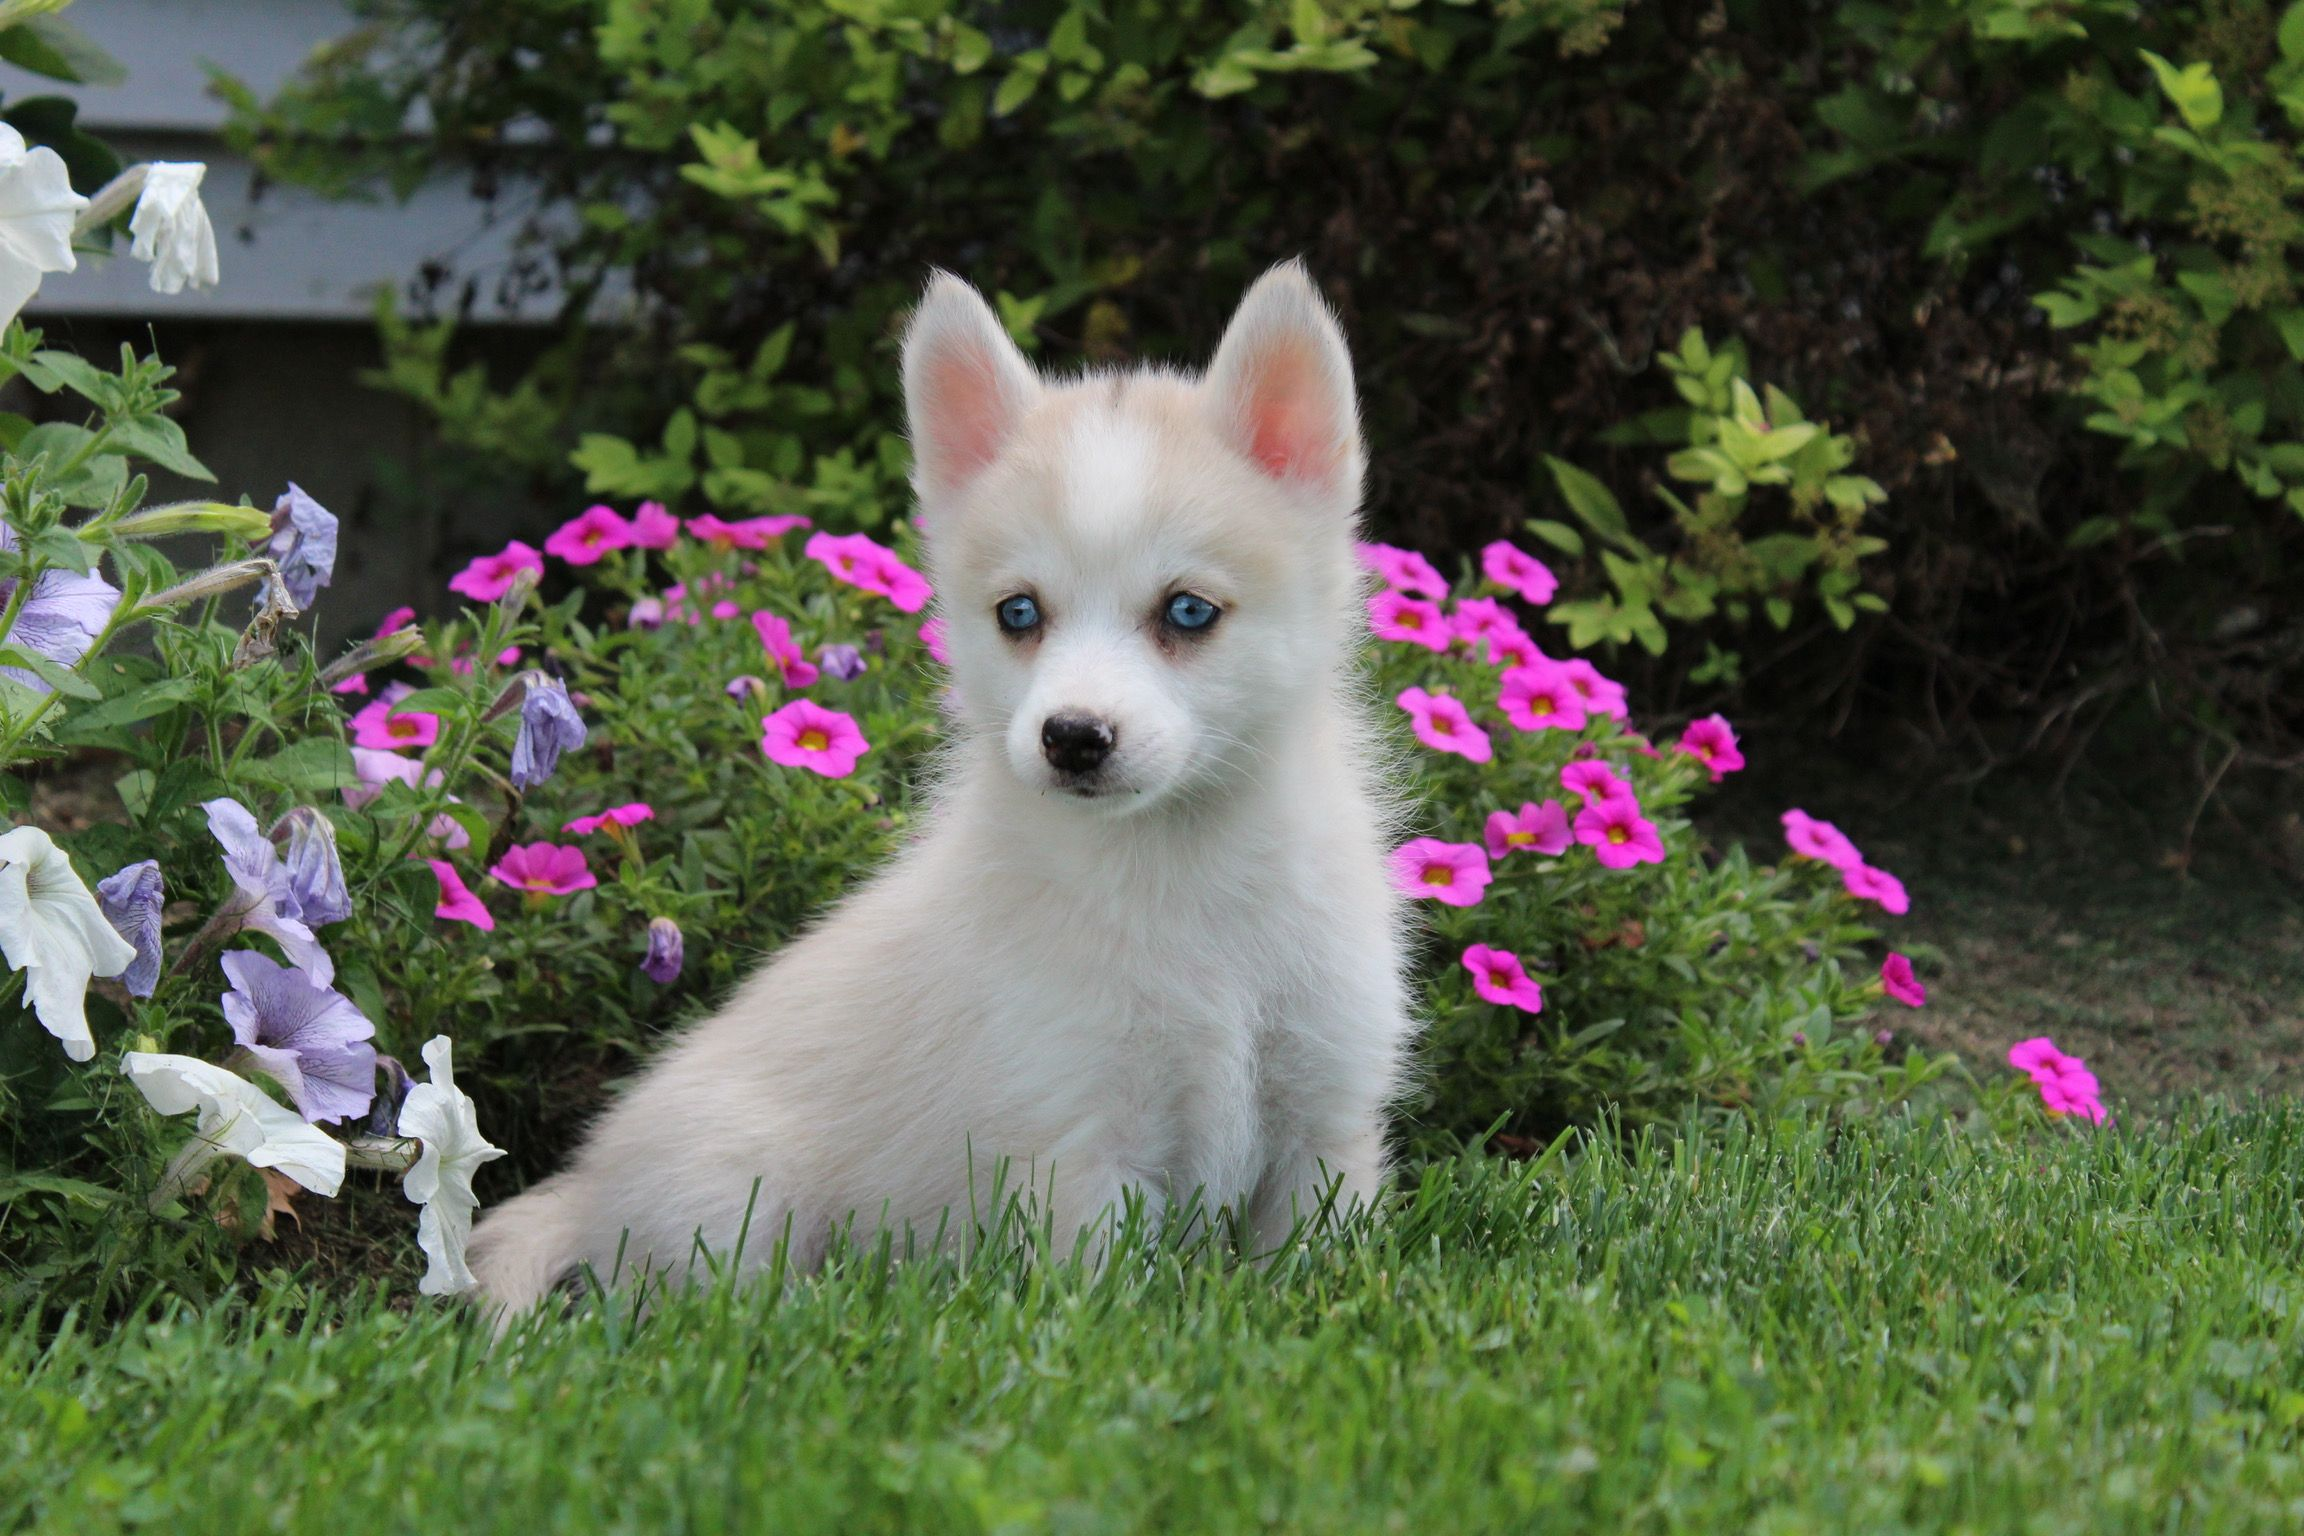 Cindy Female Ckc Pomsky Puppy For Sale In Nappanee Indiana Pomsky Puppies Pomsky Puppies For Sale Puppies For Sale